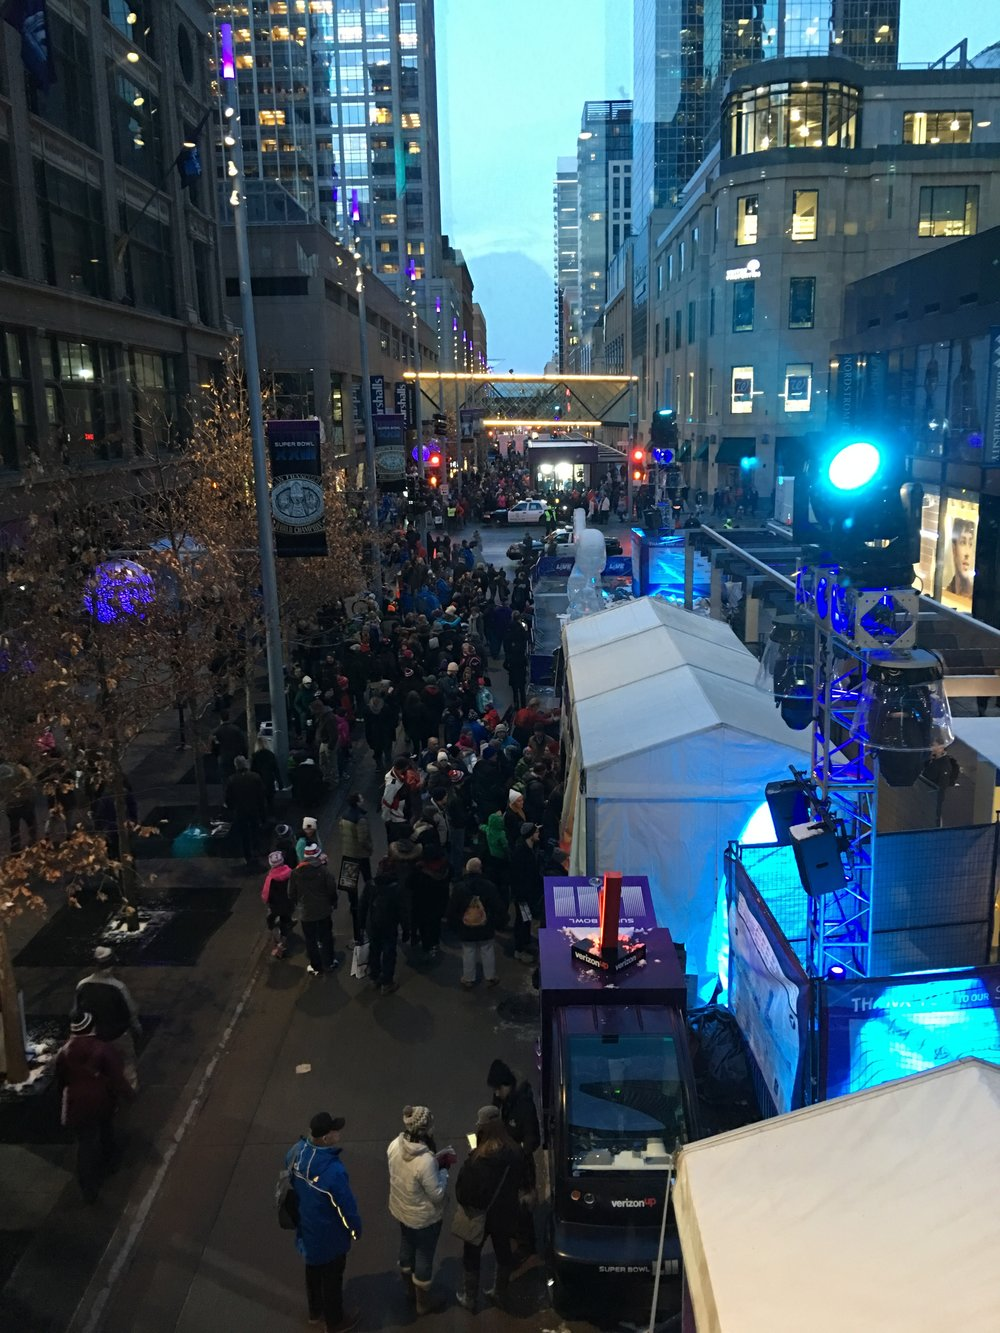 Nicollet Mall where the live concerts were held on a Wednesday night before the Super Bowl